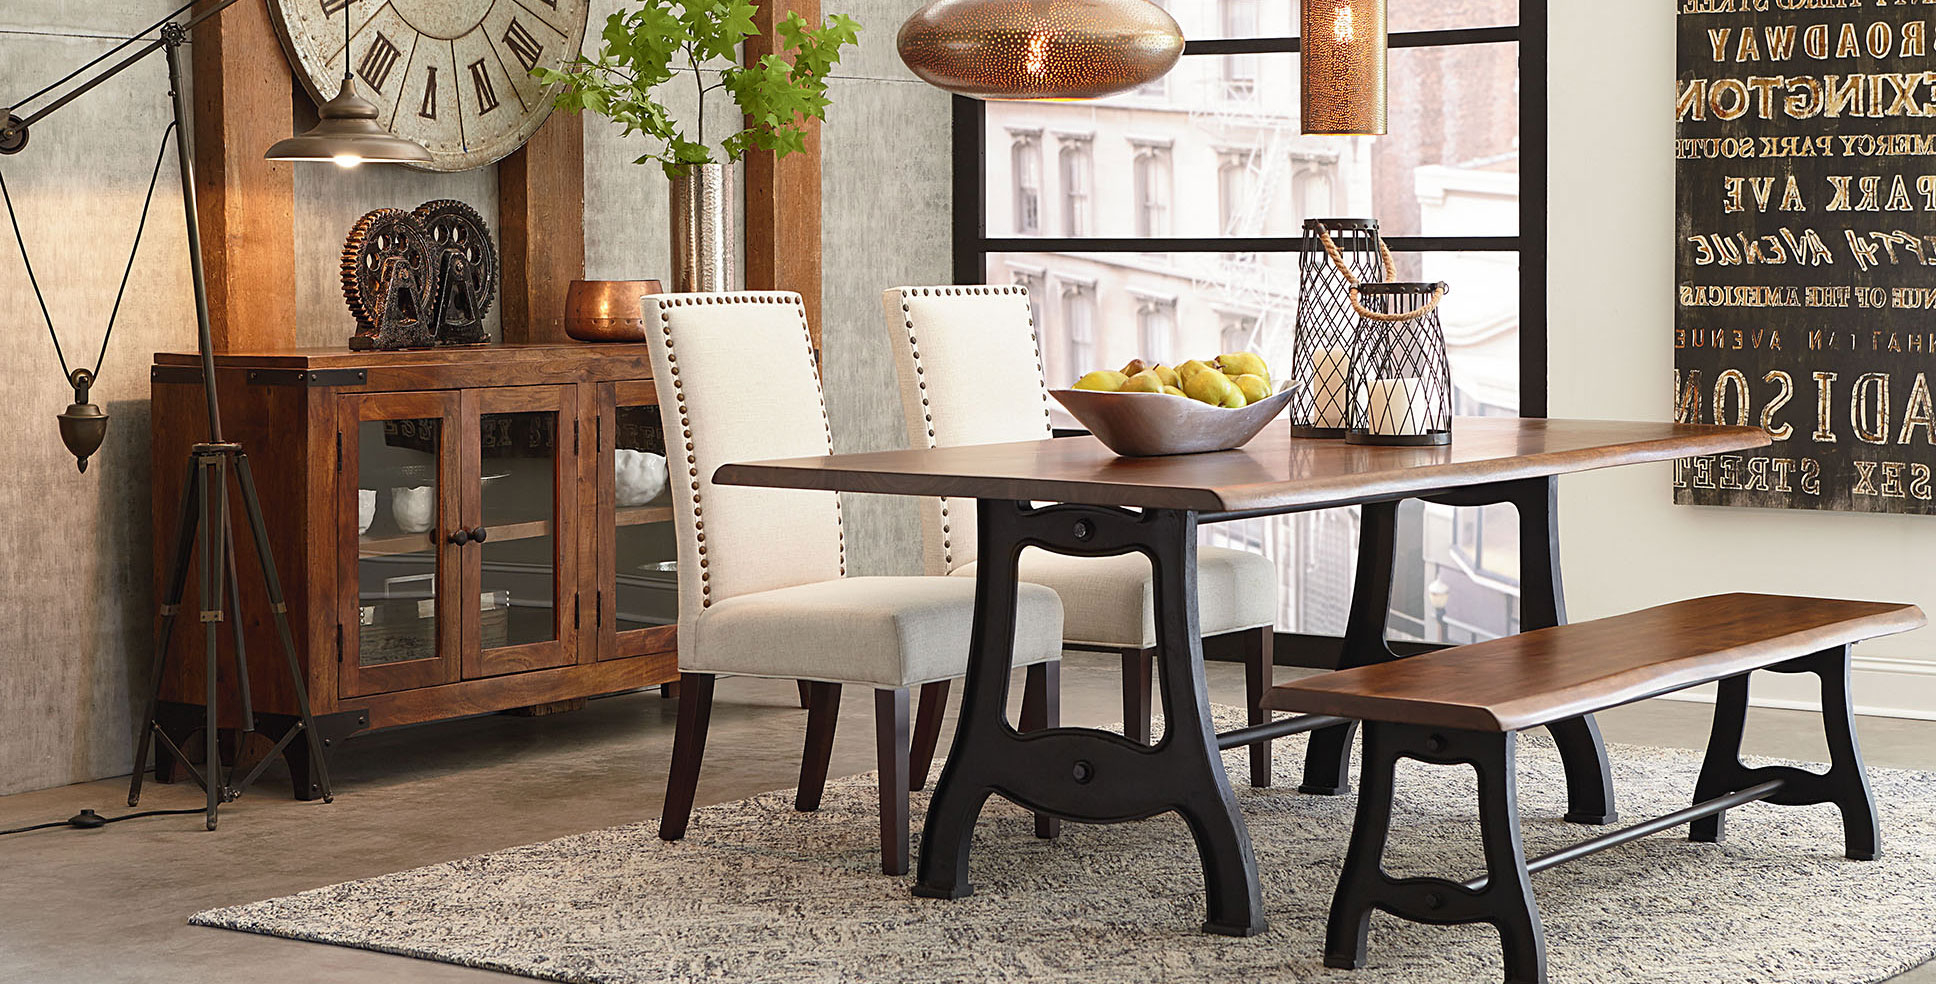 Rustic, Farmhouse, Vintage,mid Century Modern, & Industrial In 2018 Rustic Mid Century Modern 6 Seating Dining Tables In White And Natural Wood (View 28 of 30)